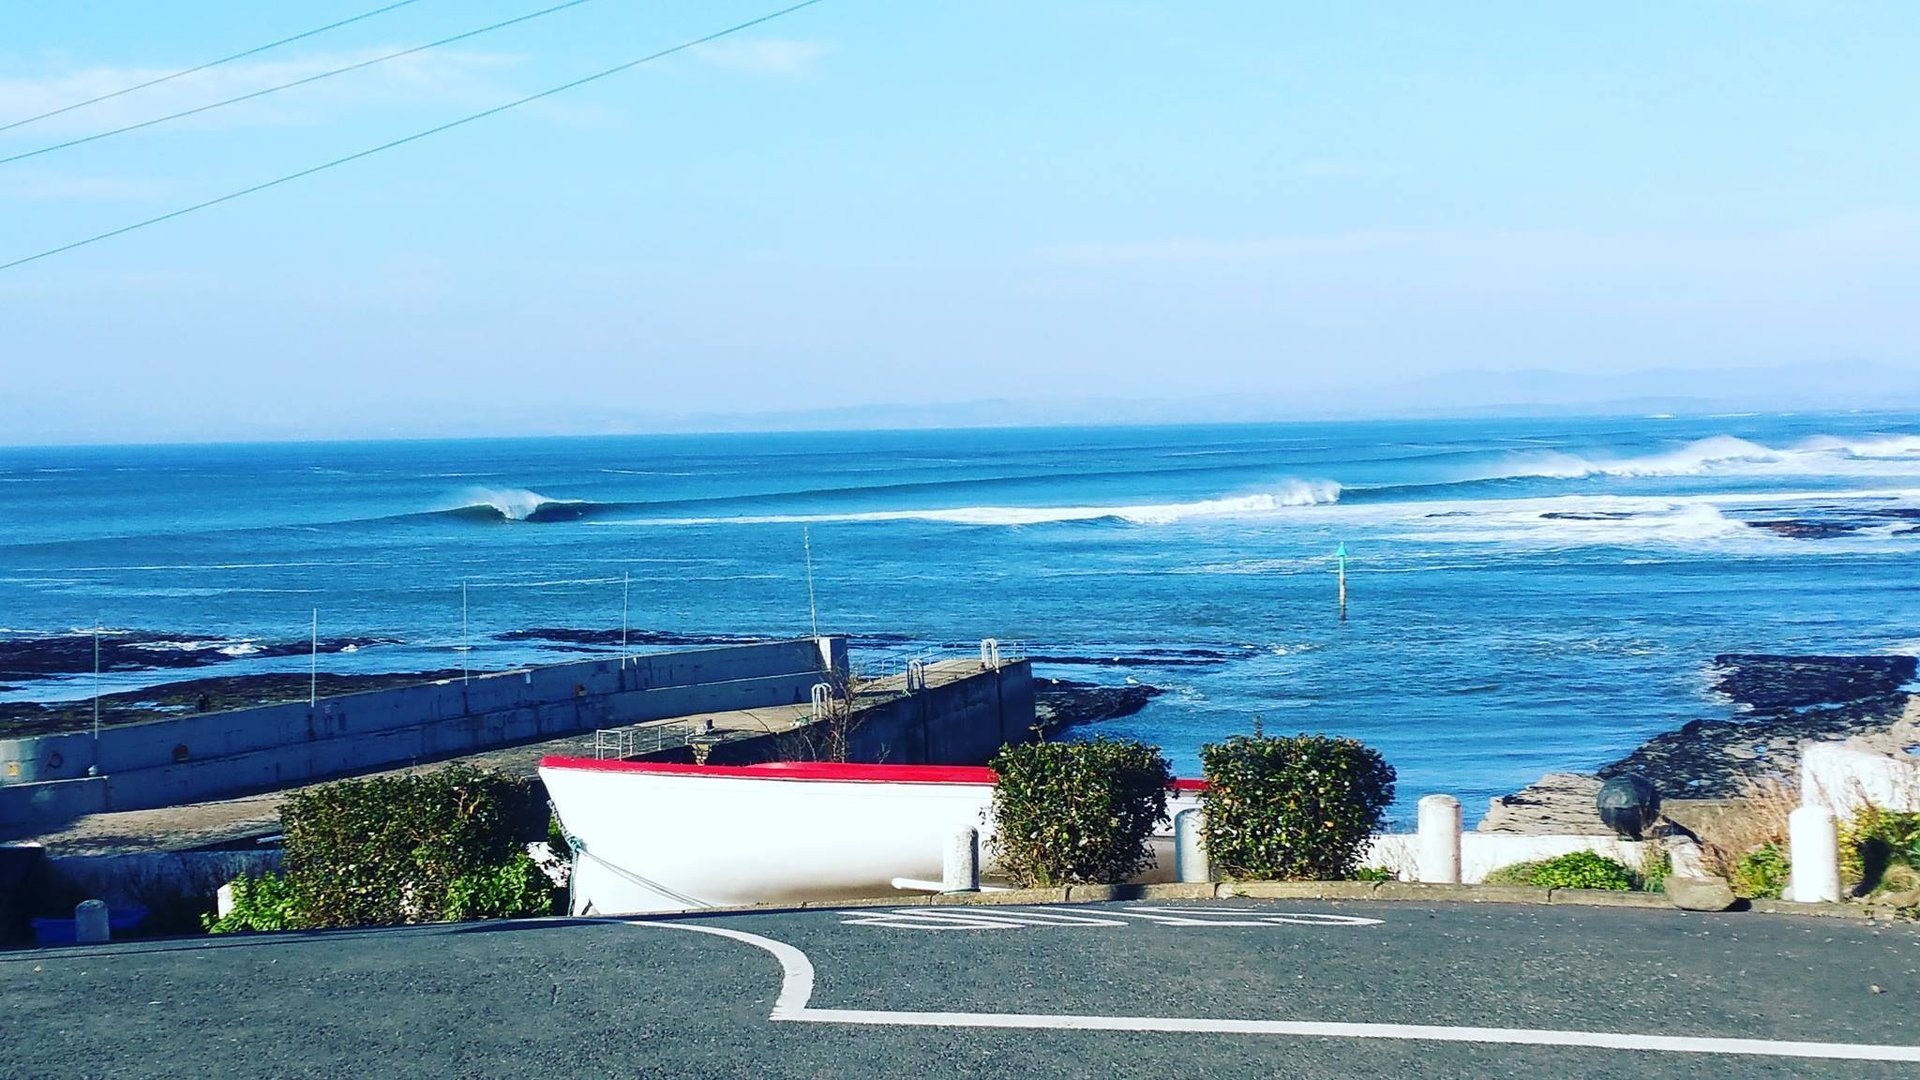 Jimmy Slade's photo of Bundoran - The Peak